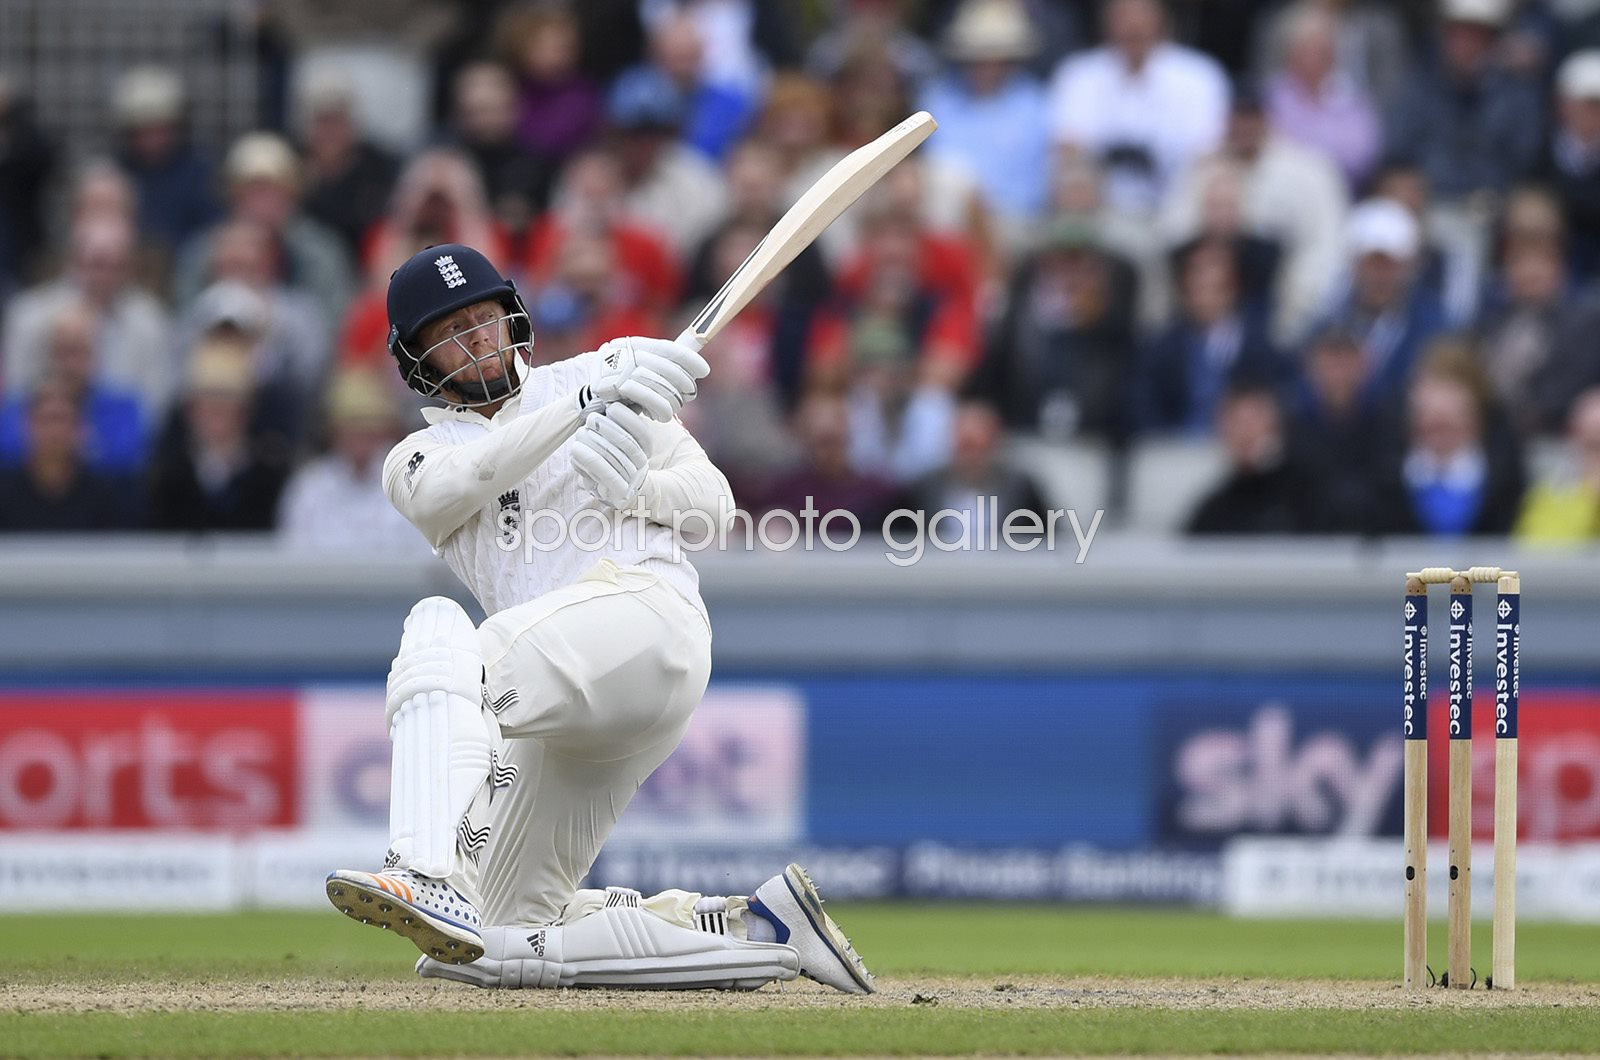 Jonny Bairstow 99 England v South Africa Old Trafford 2017